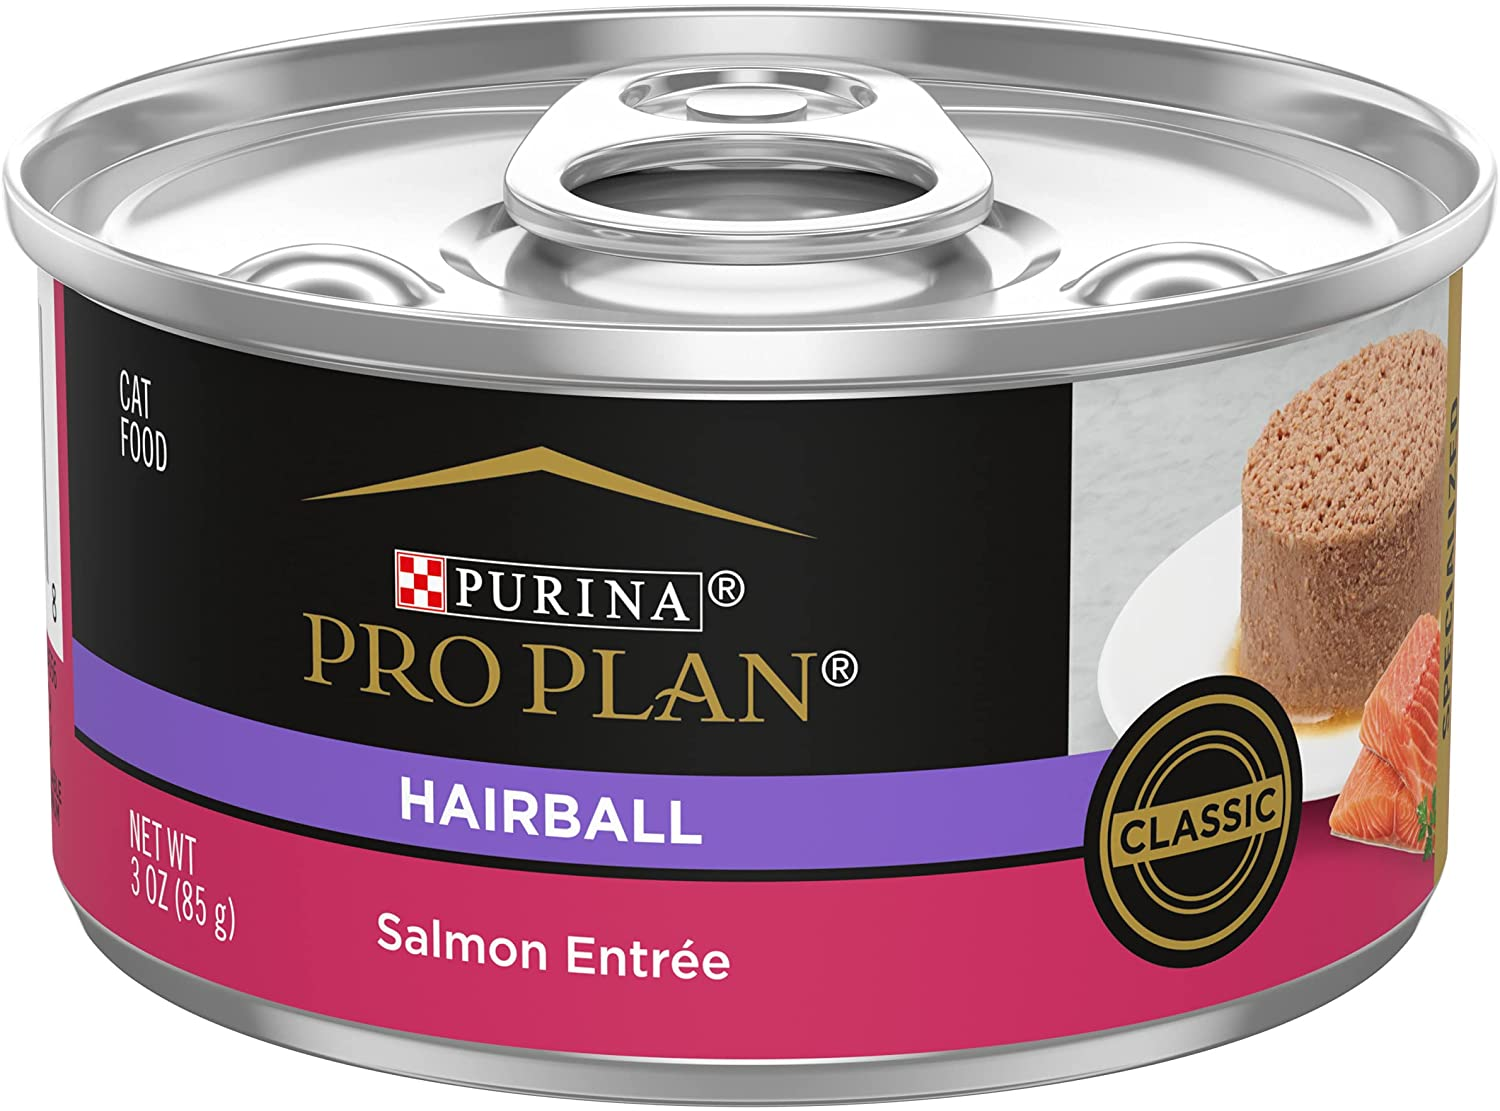 Purina Pro Plan Hairball Control, Pate Wet Cat Food, Specialized Hairball Salmon Entree - (24) 3 oz. Cans